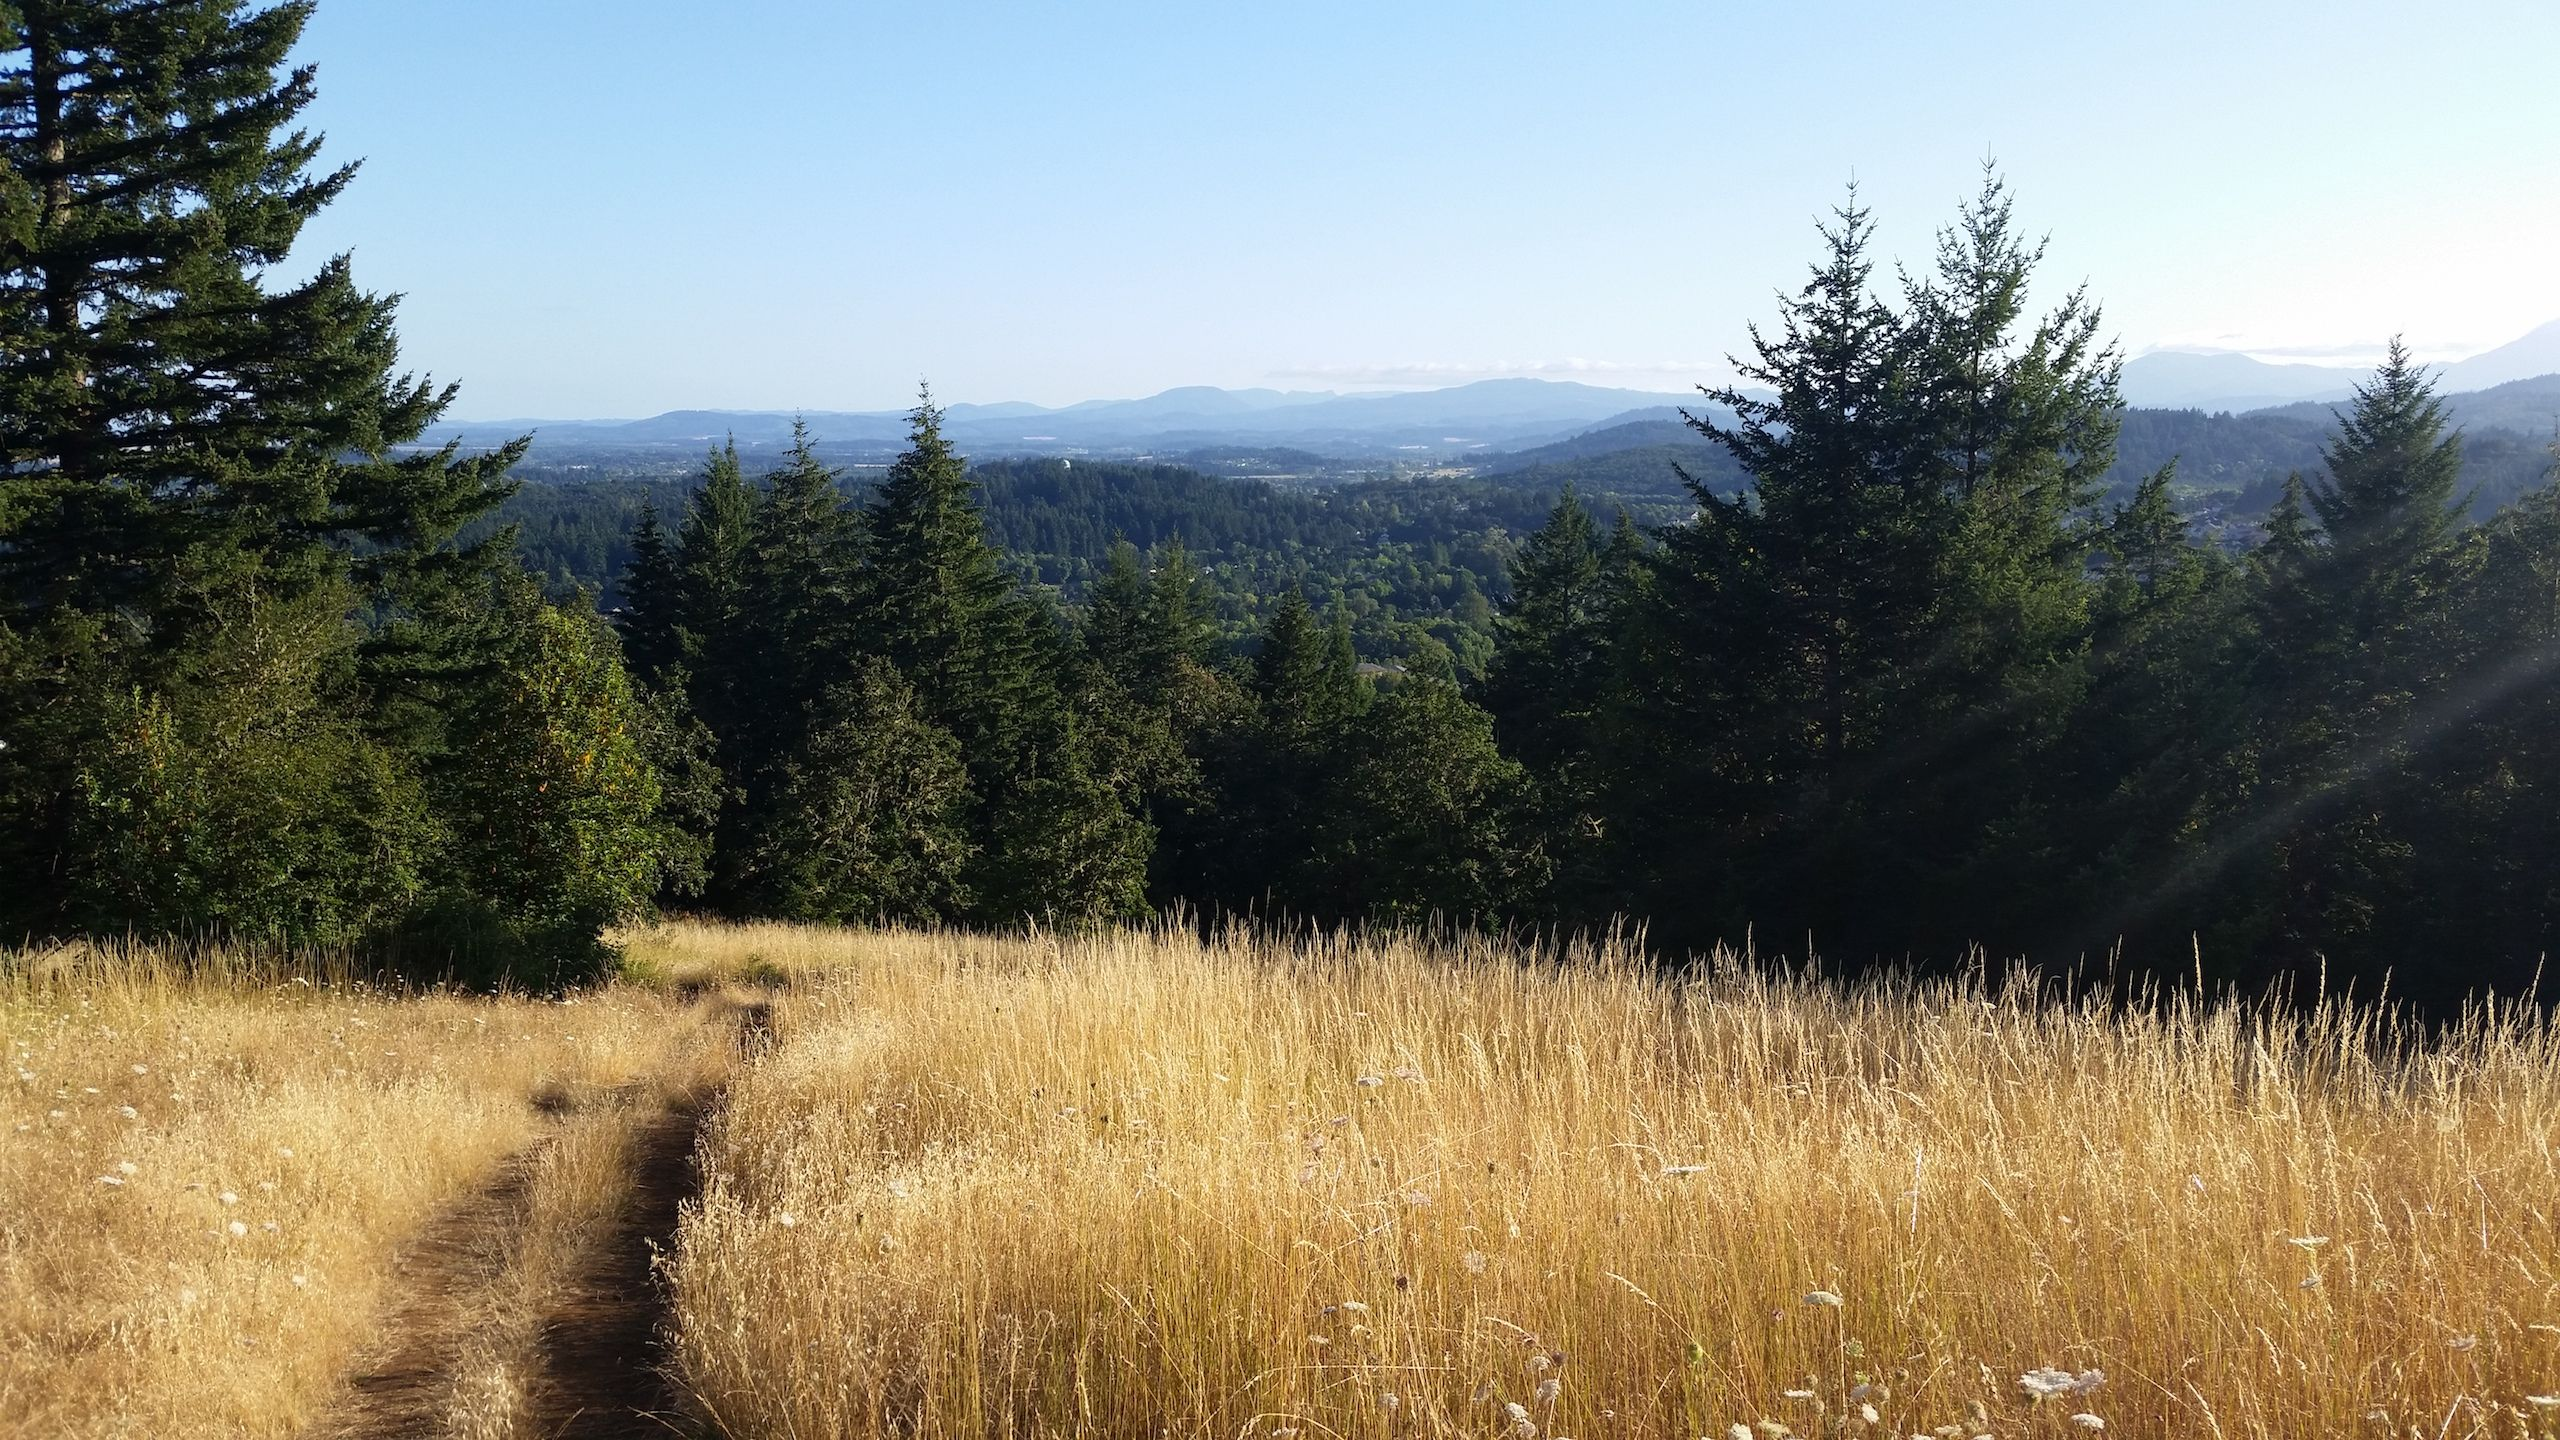 View from the top of Chip Ross Park in Corvallis, OR.